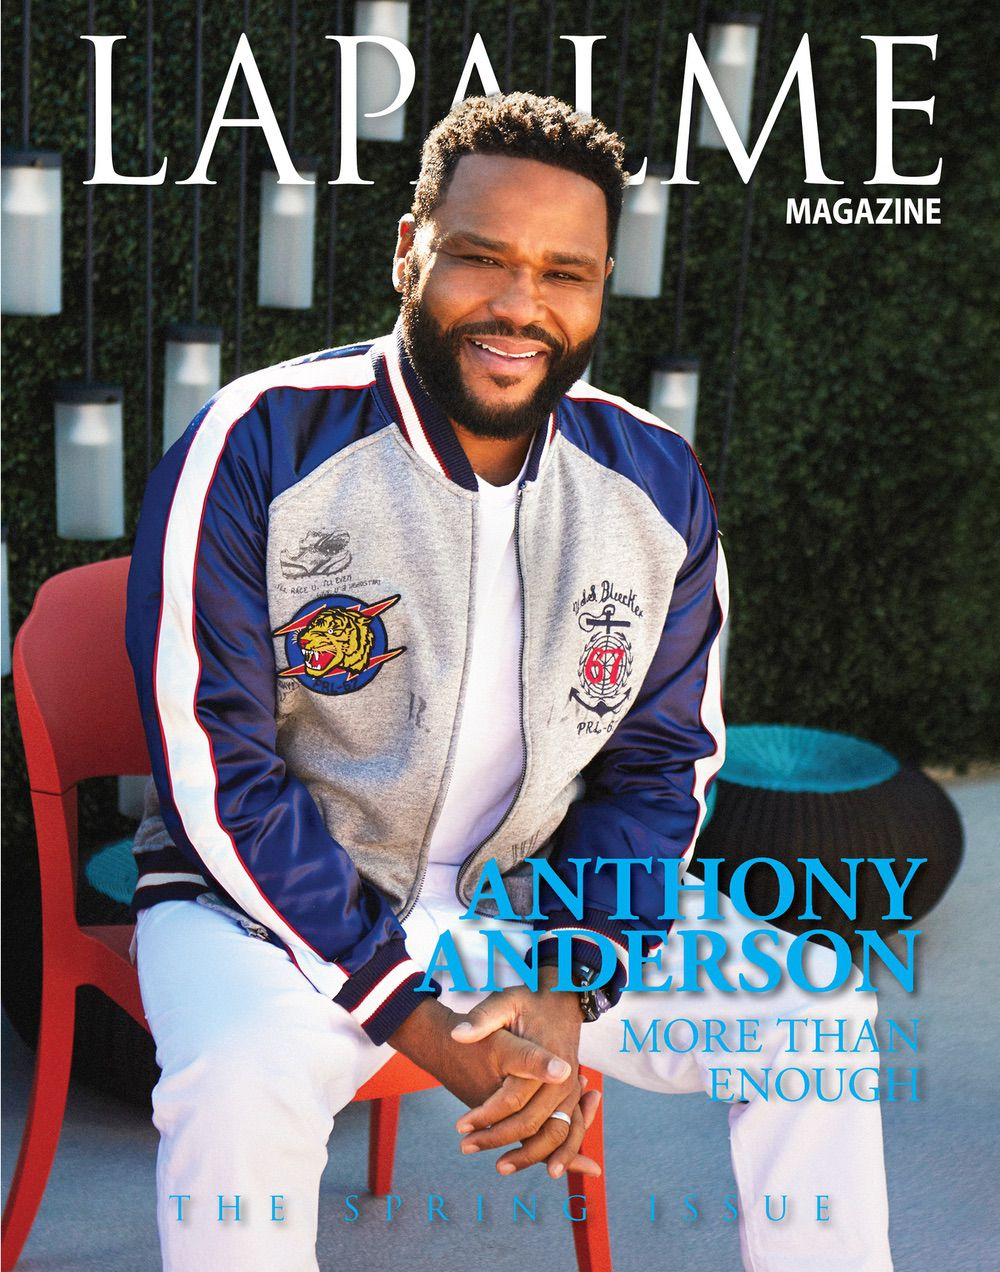 ANTHONY ANDERSON – MORE THAN ENOUGH